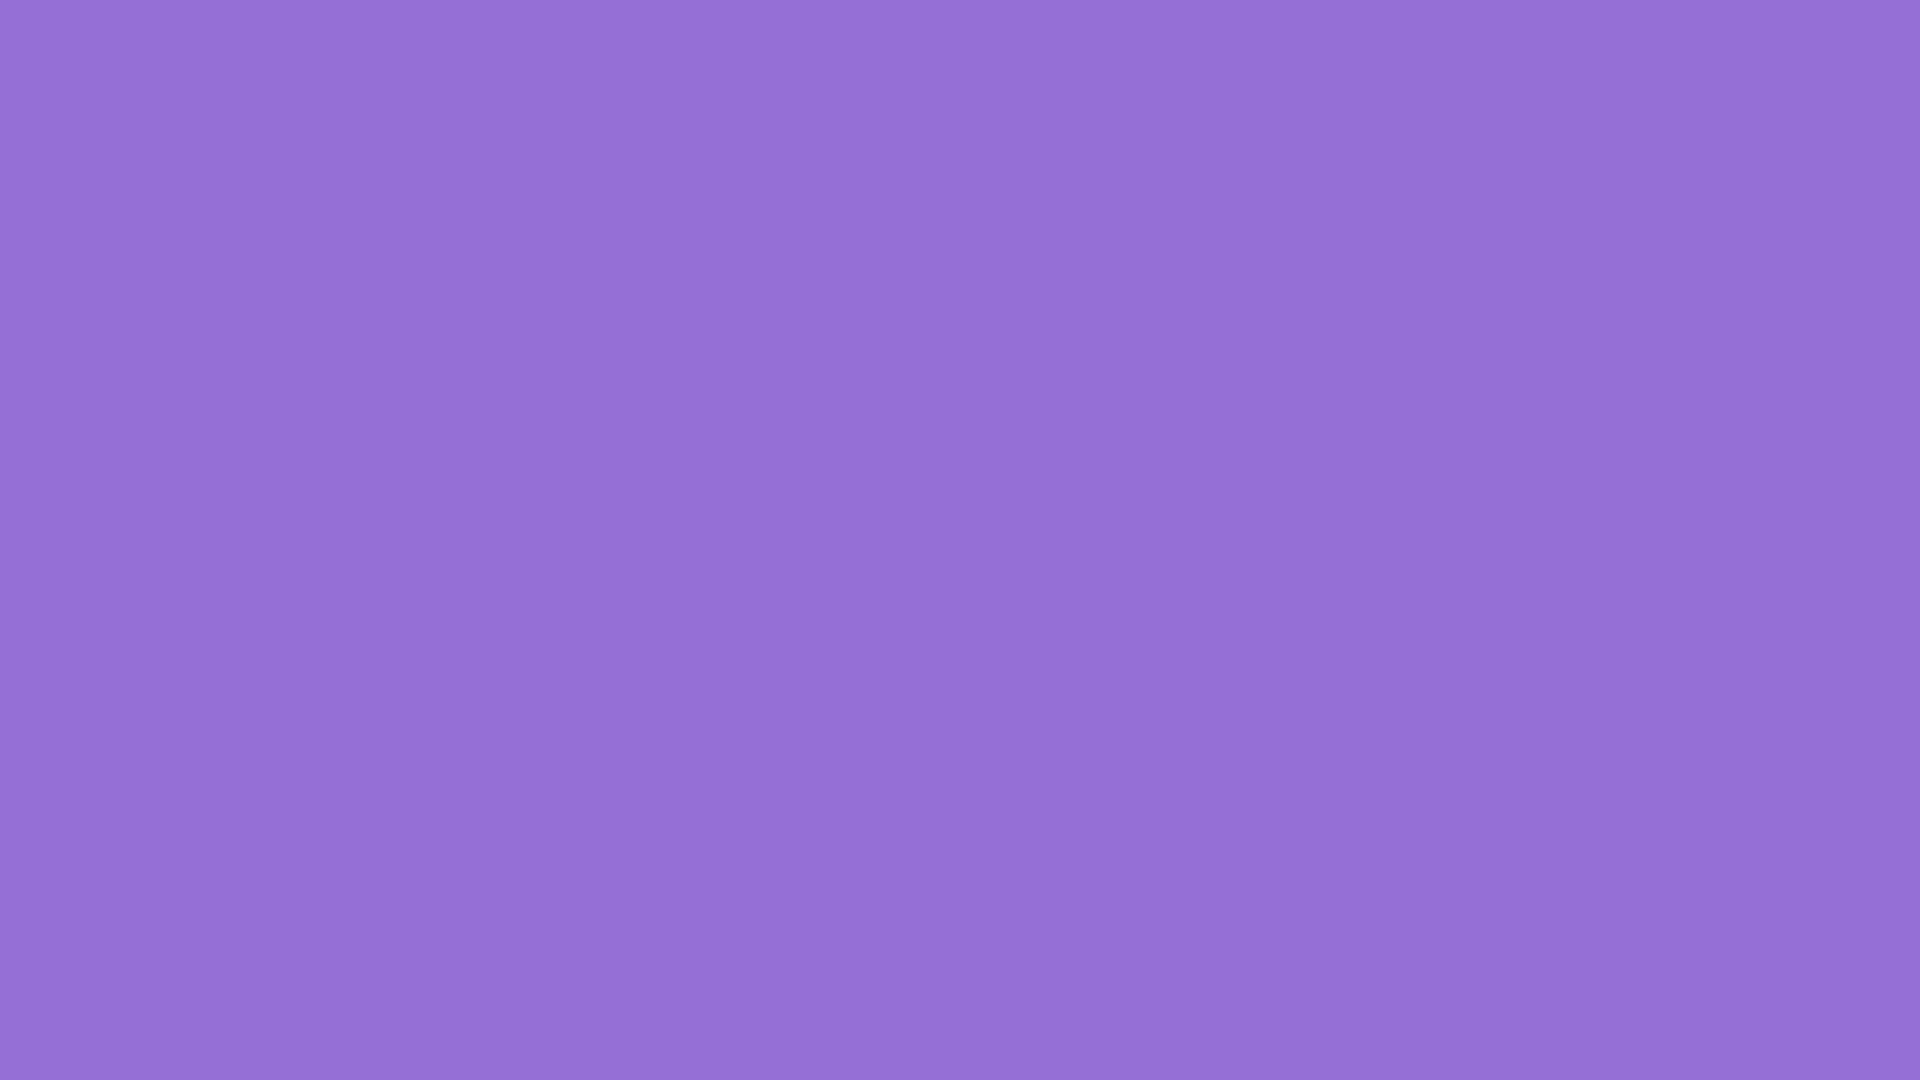 Solid Dark Purple Backgrounds Images Pictures   Becuo 1920x1080